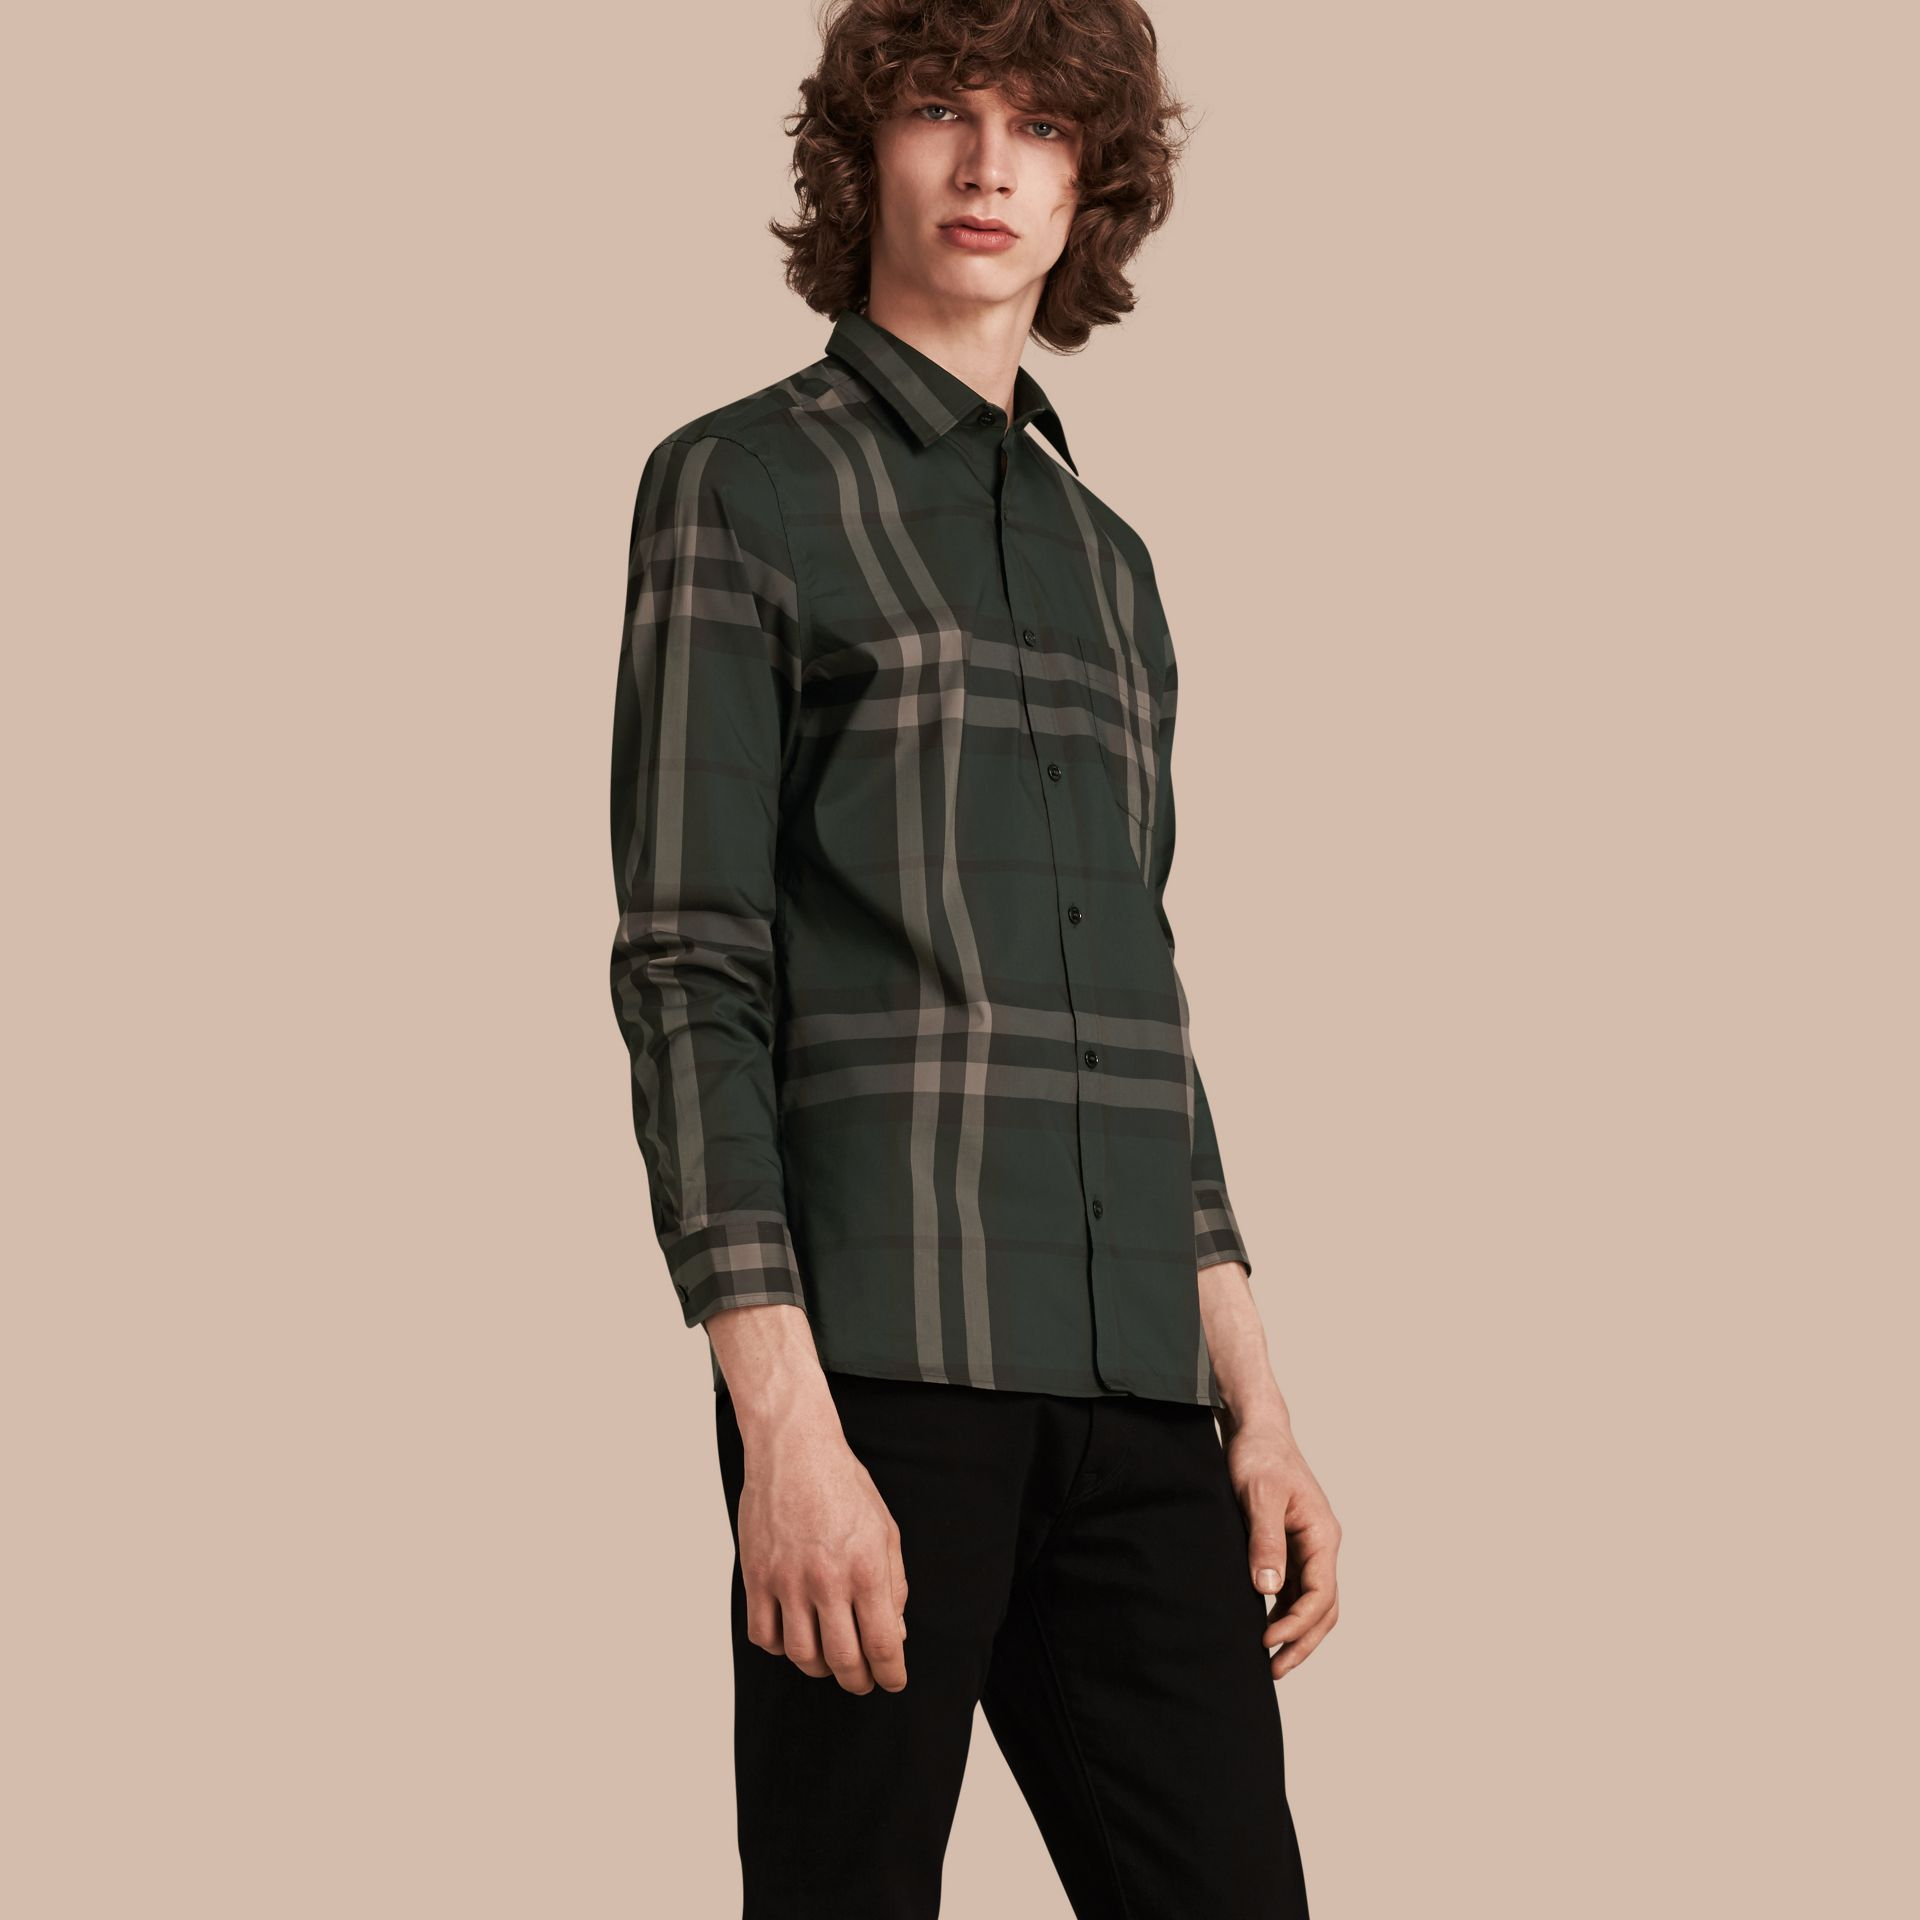 Racing green Check Stretch Cotton Shirt Racing Green - gallery image 1